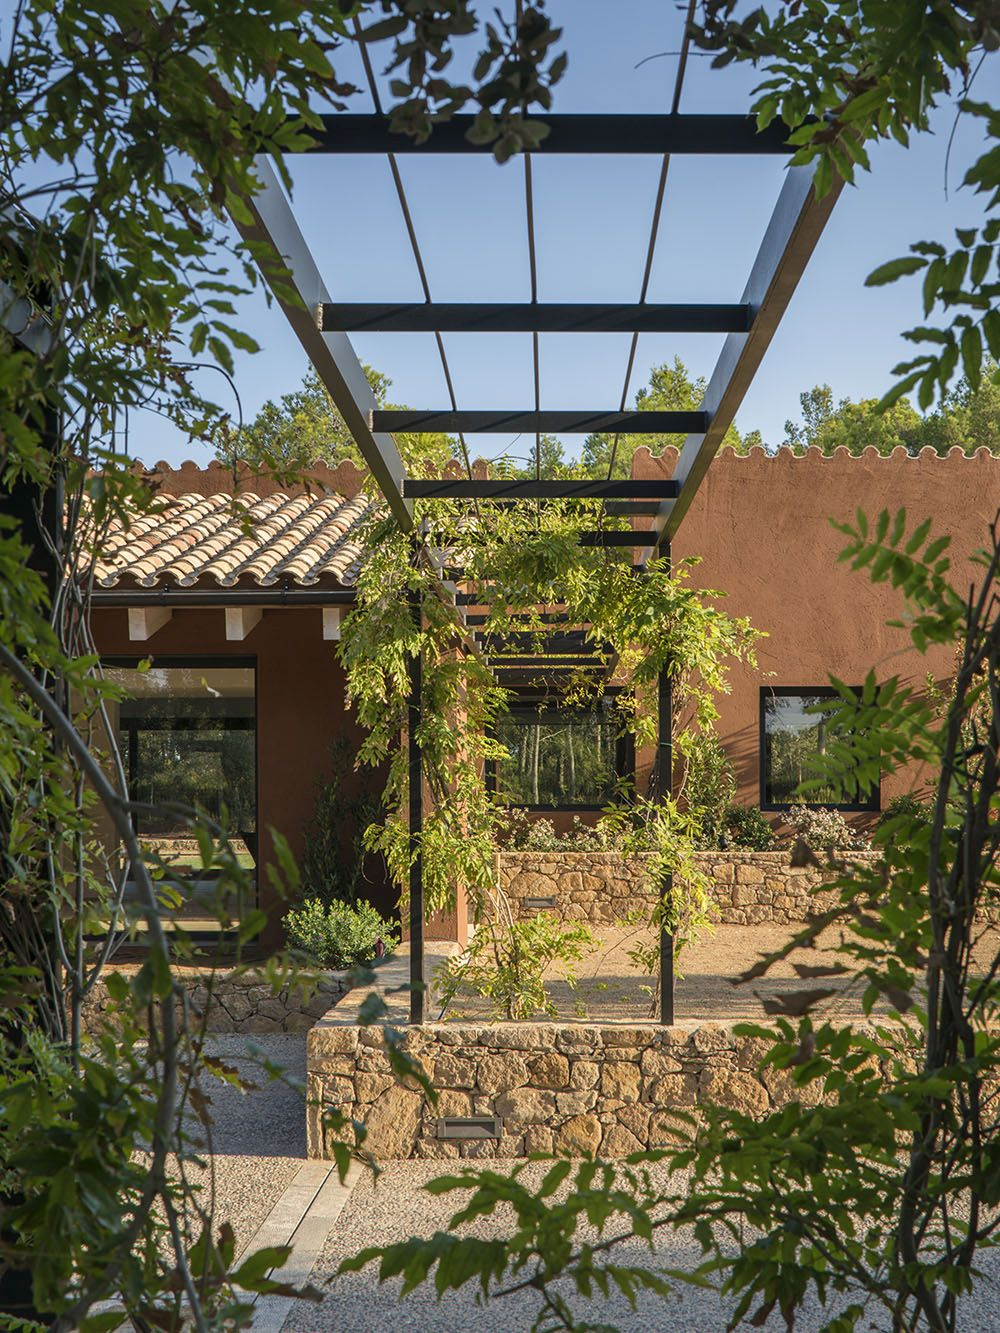 Modern arbors add plantings to the view right out the window